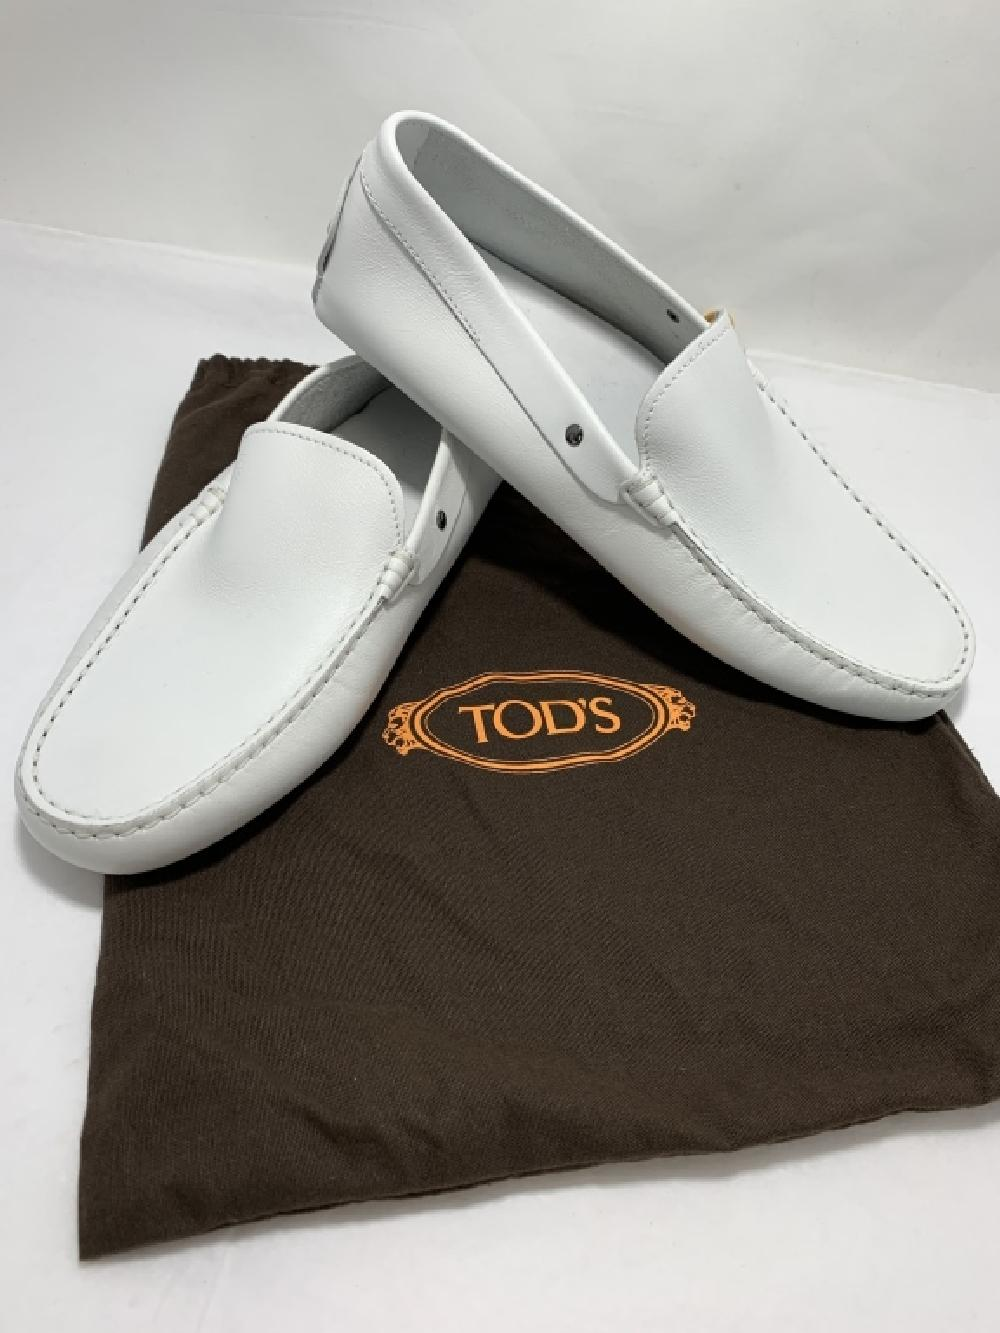 WHITE LEATHER LOAFERS SHOES MENS US